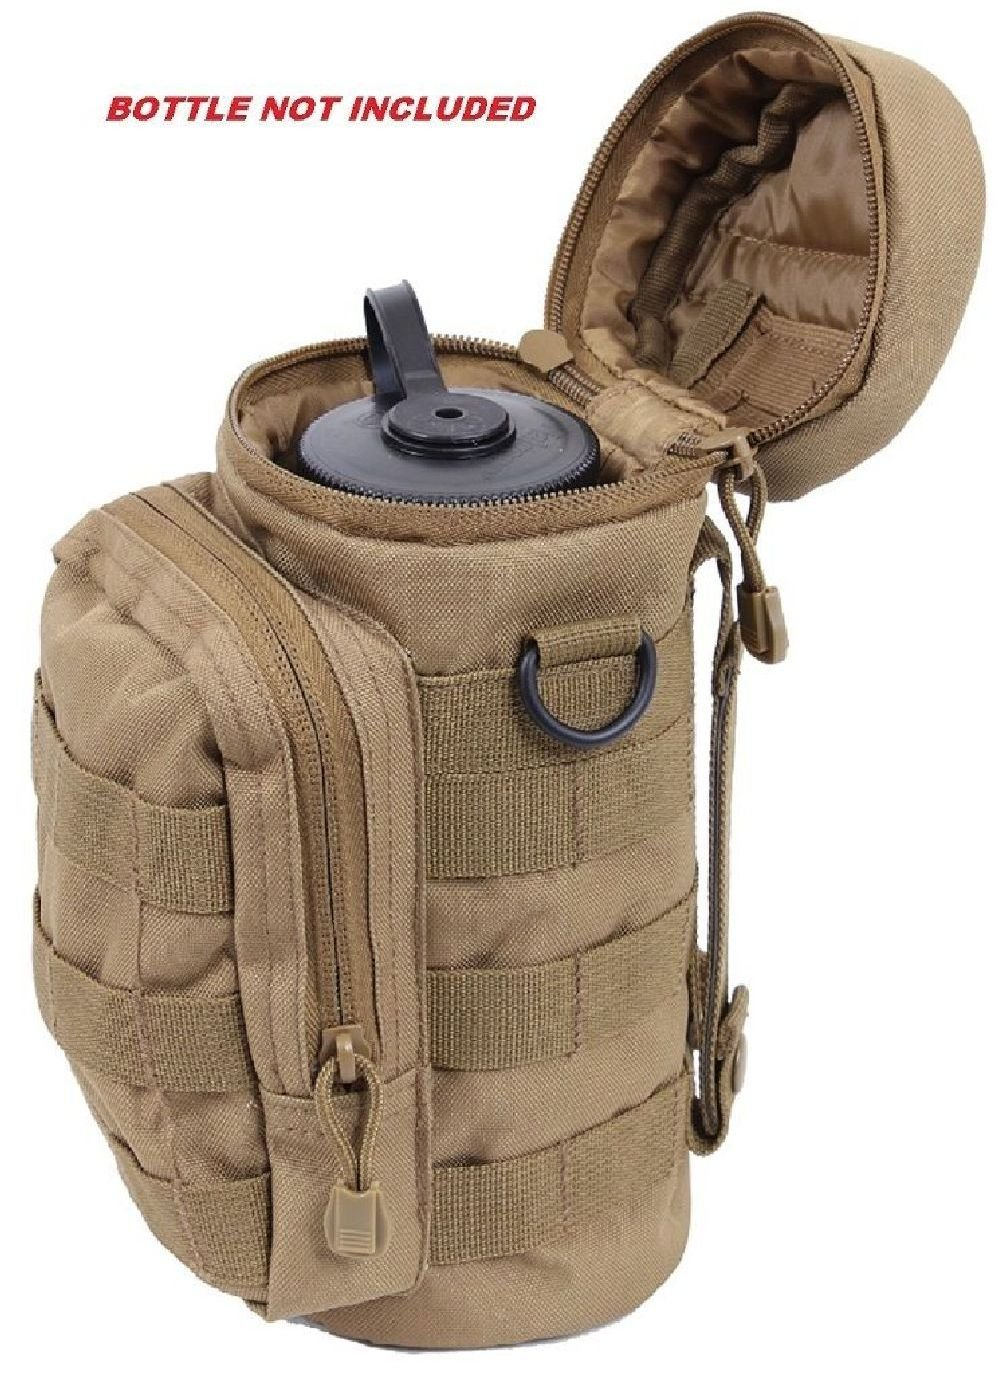 Coyote Brown Military Molle Tactical Travel Water Bottle Pouch Carry Bag